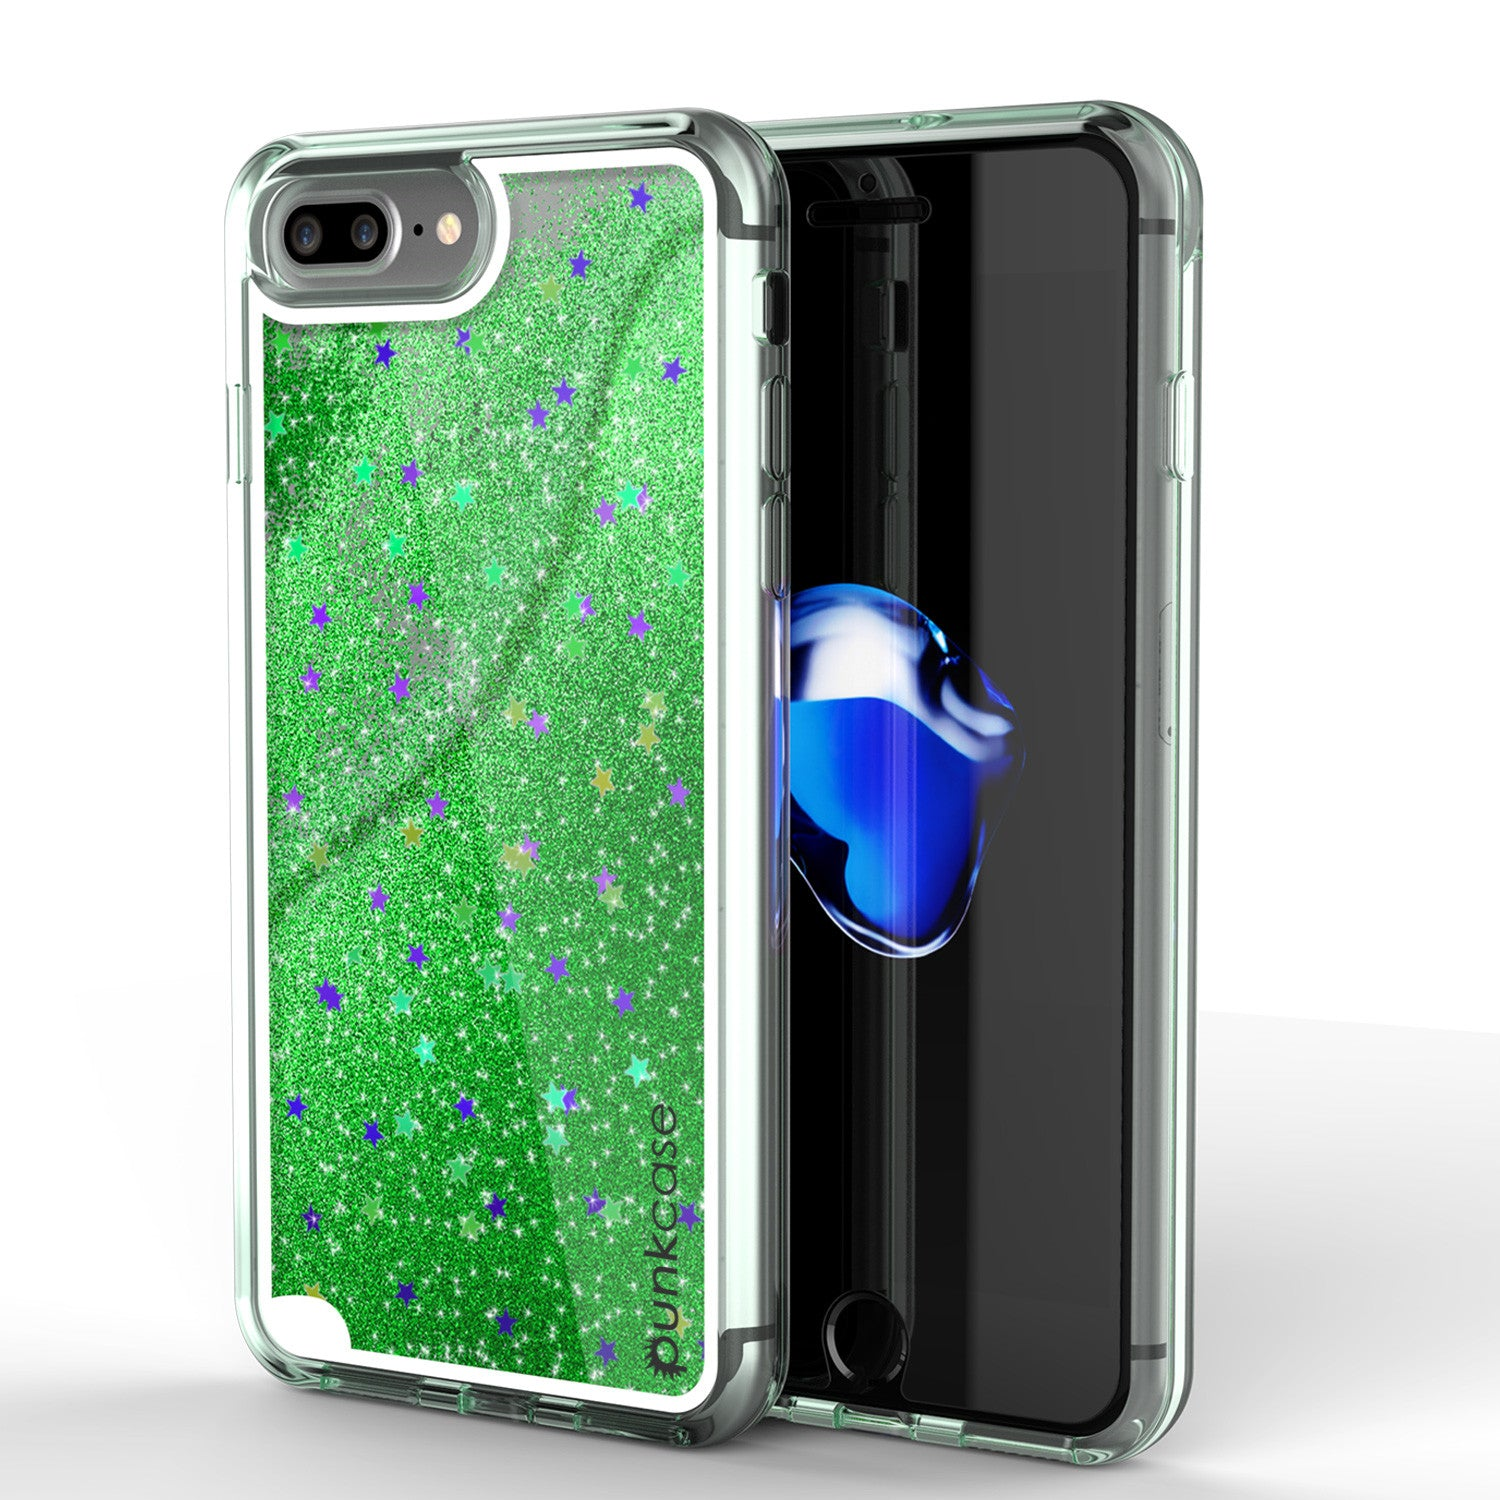 iPhone 7+ Plus Case, PunkCase LIQUID Green Series, Protective Dual Layer Floating Glitter Cover